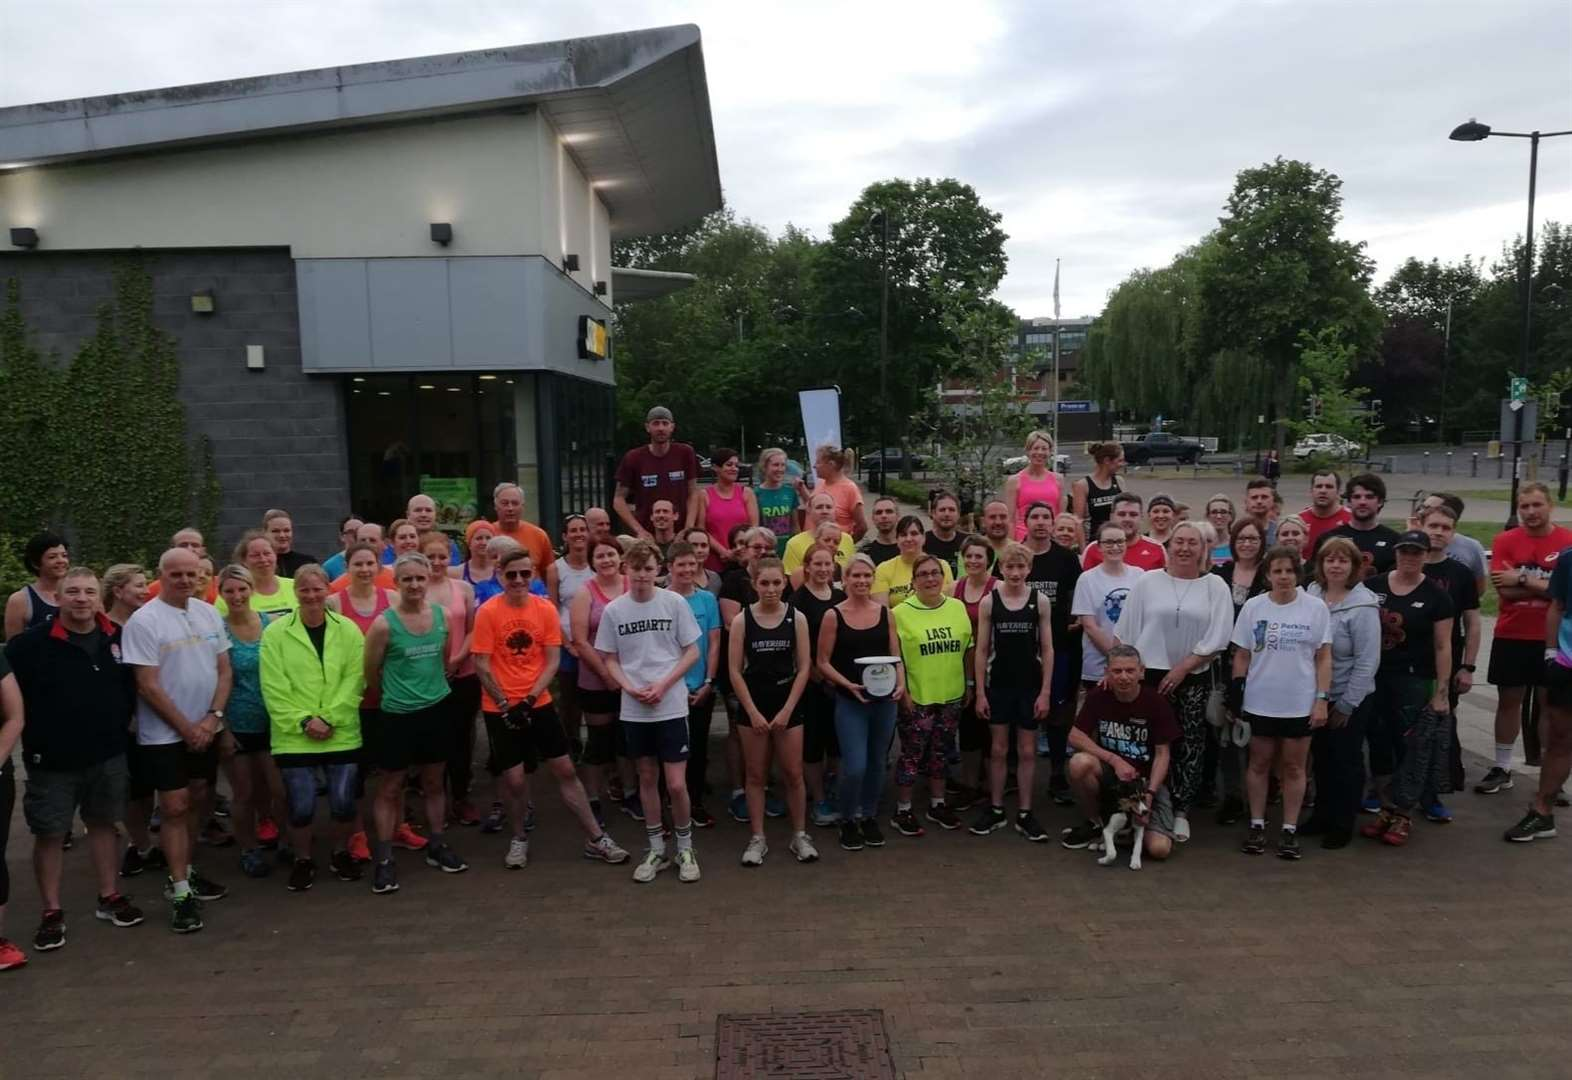 Runners spurred on by the legacy of two Haverhill youngsters